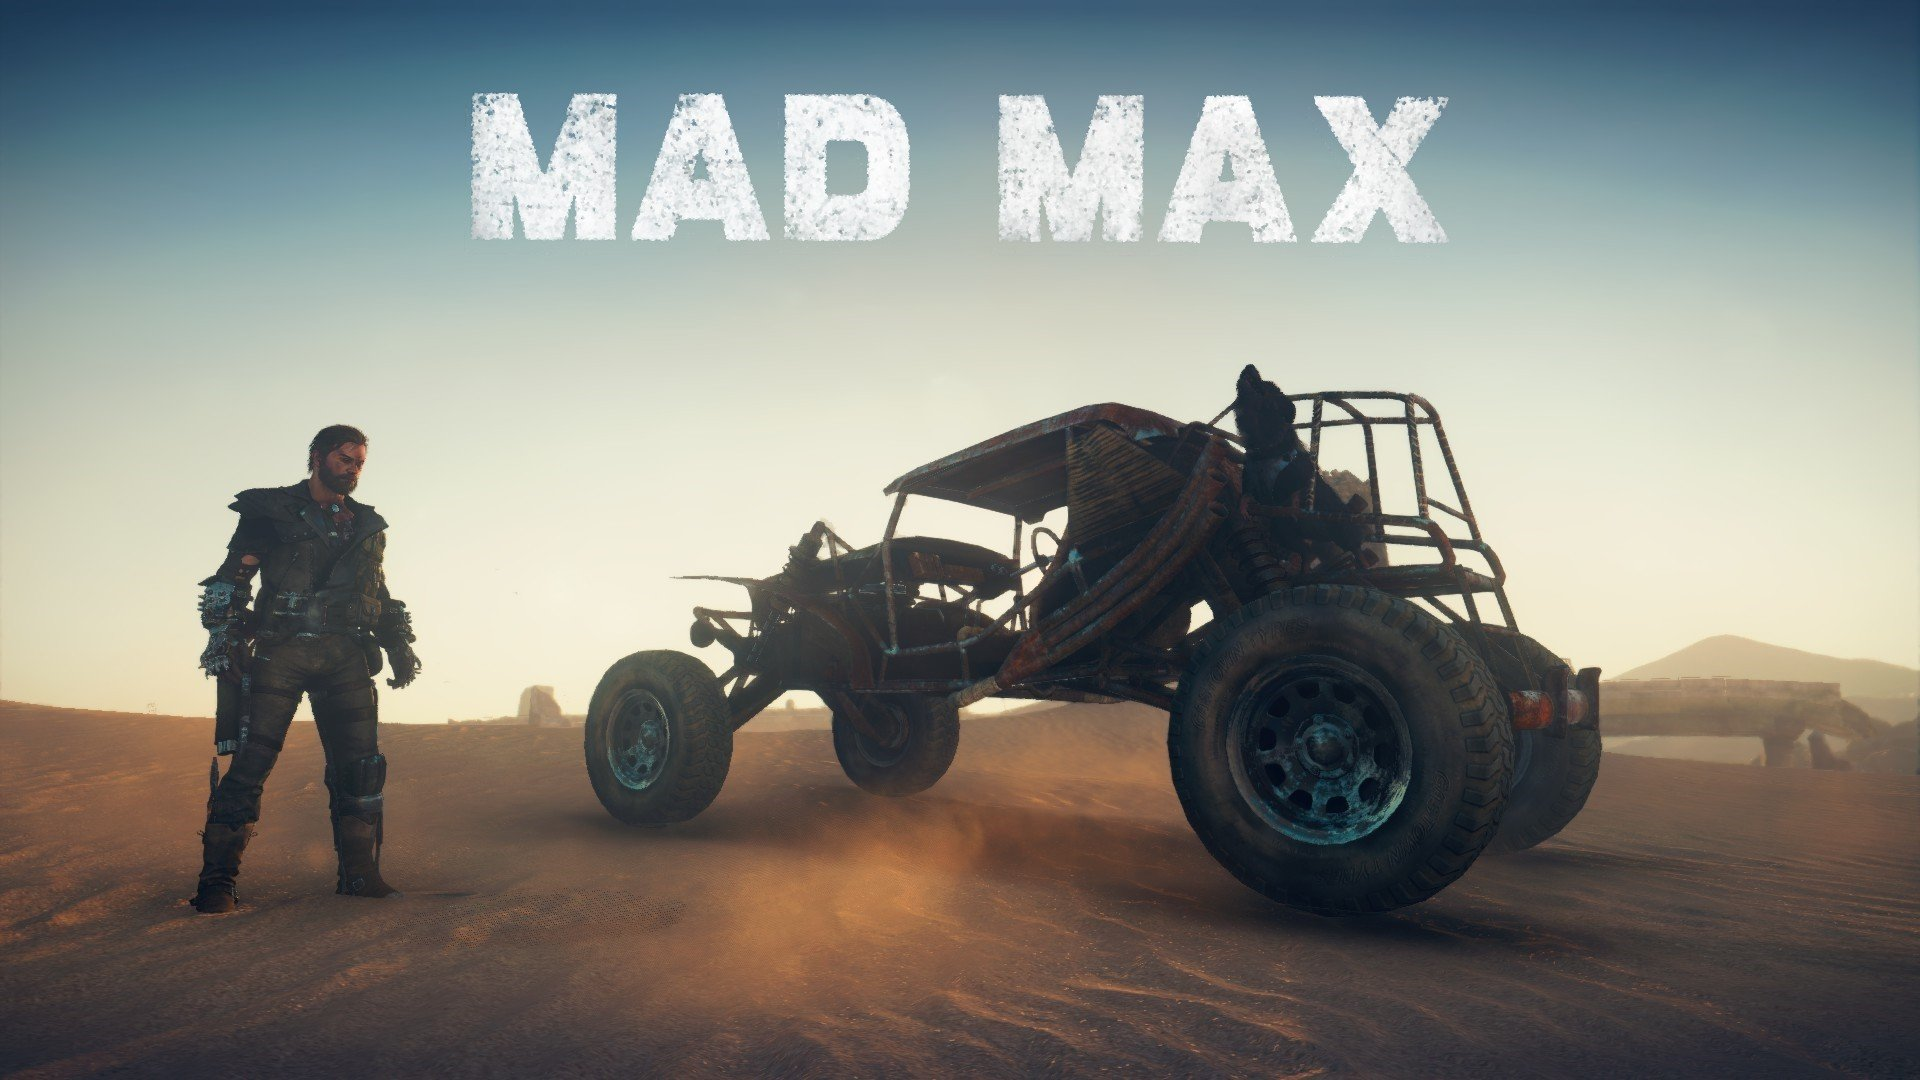 Full Hd Wallpapers 1080p Desktop Mad Max Mad Max Game Dinki Di Pc Gaming Buggy Sun